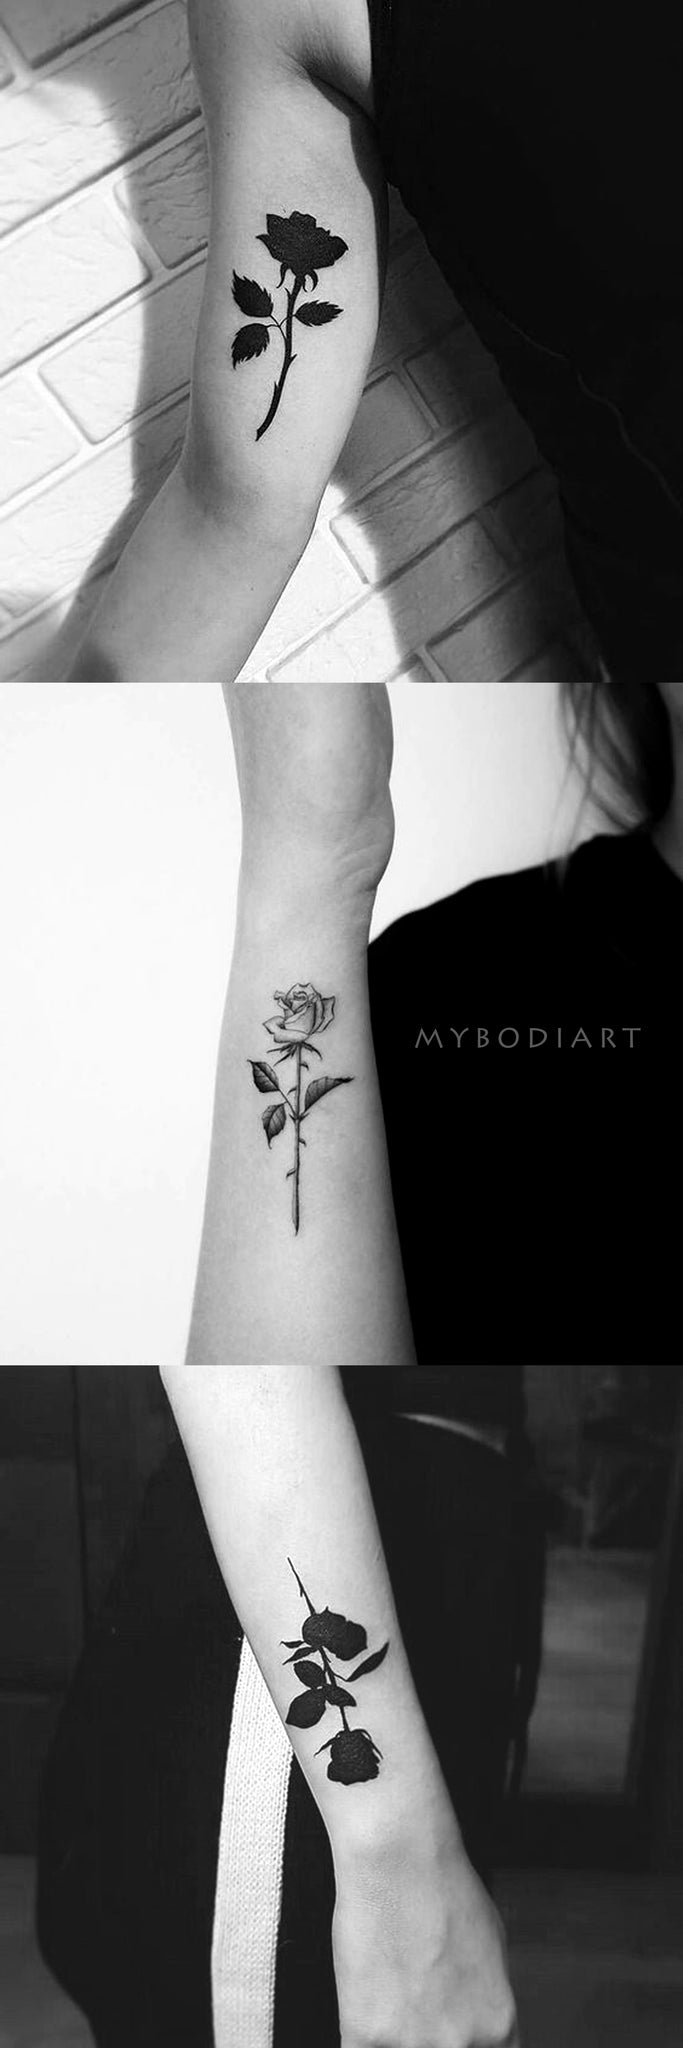 Darkest Black Rose Bicep Arm Tattoo ideas for Women - Ideas de tatuajes con flor rosa negra para mujeres - www.MyBodiArt.com